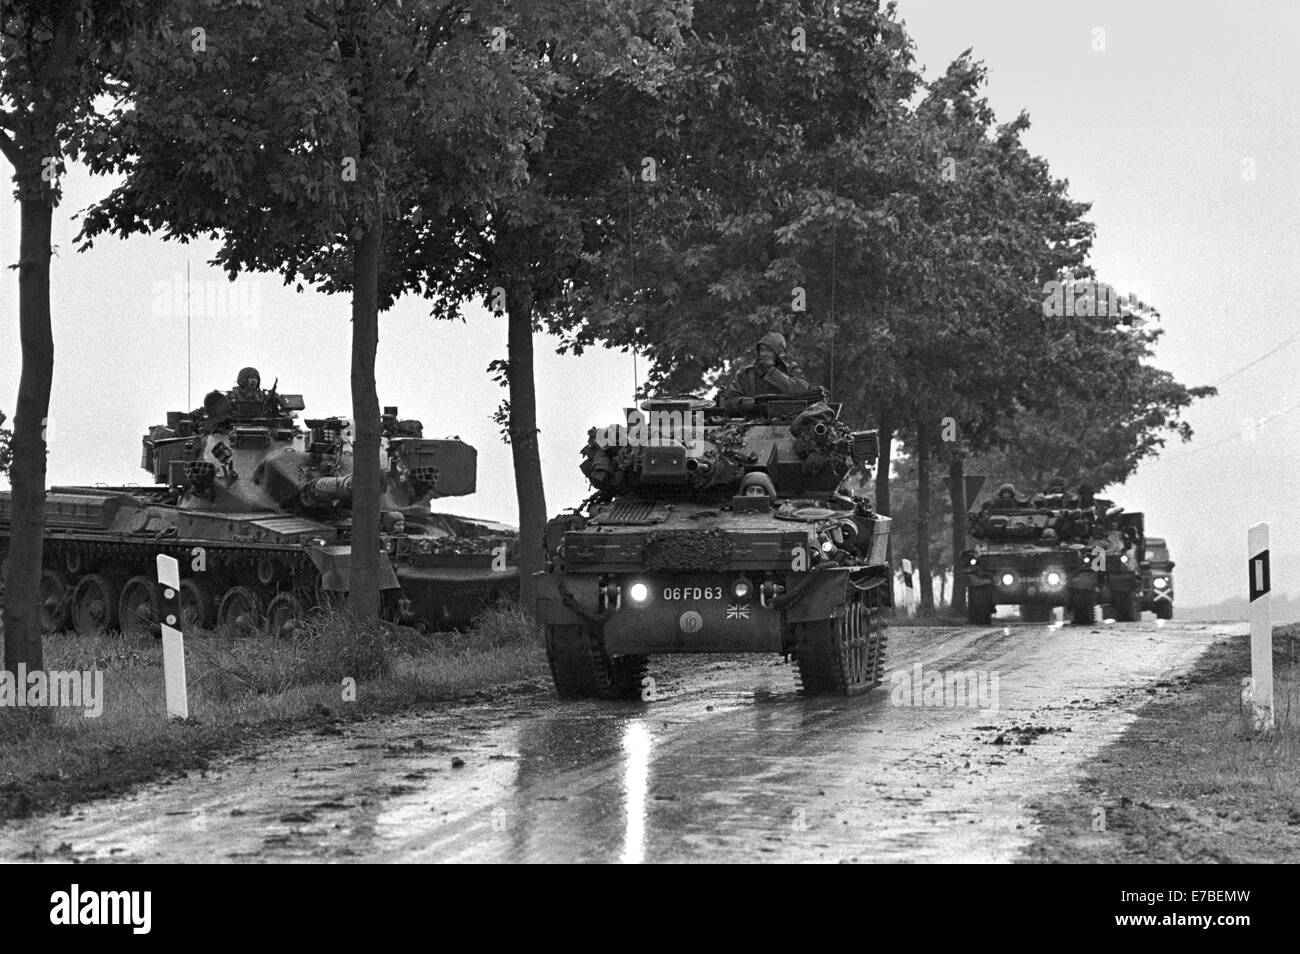 NATO exercises in Germany, British Army armored vehicles (September 1986). - Stock Image